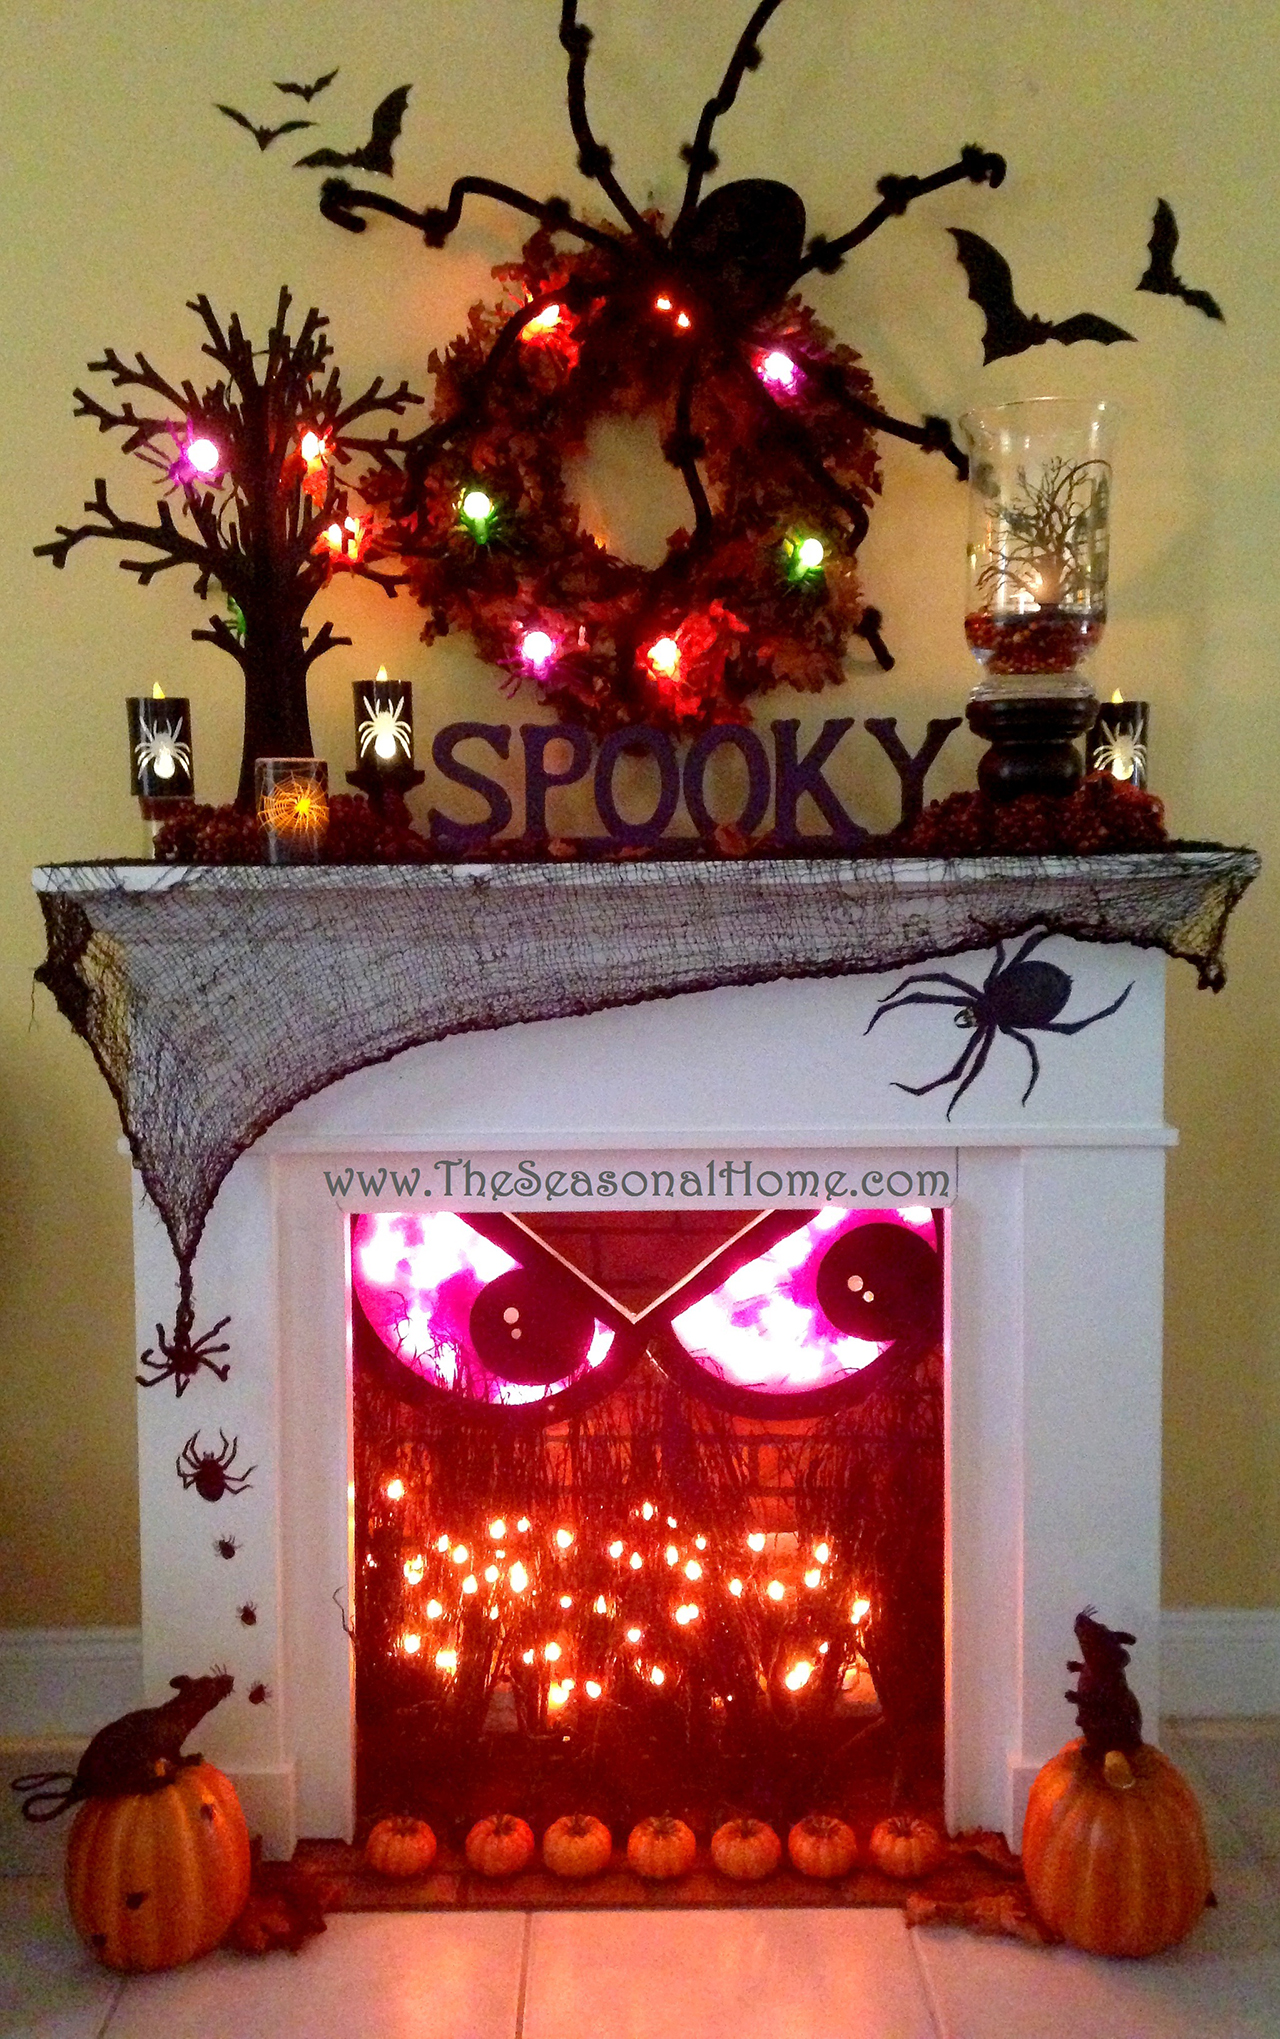 1 spooky fireplace crackles with fun